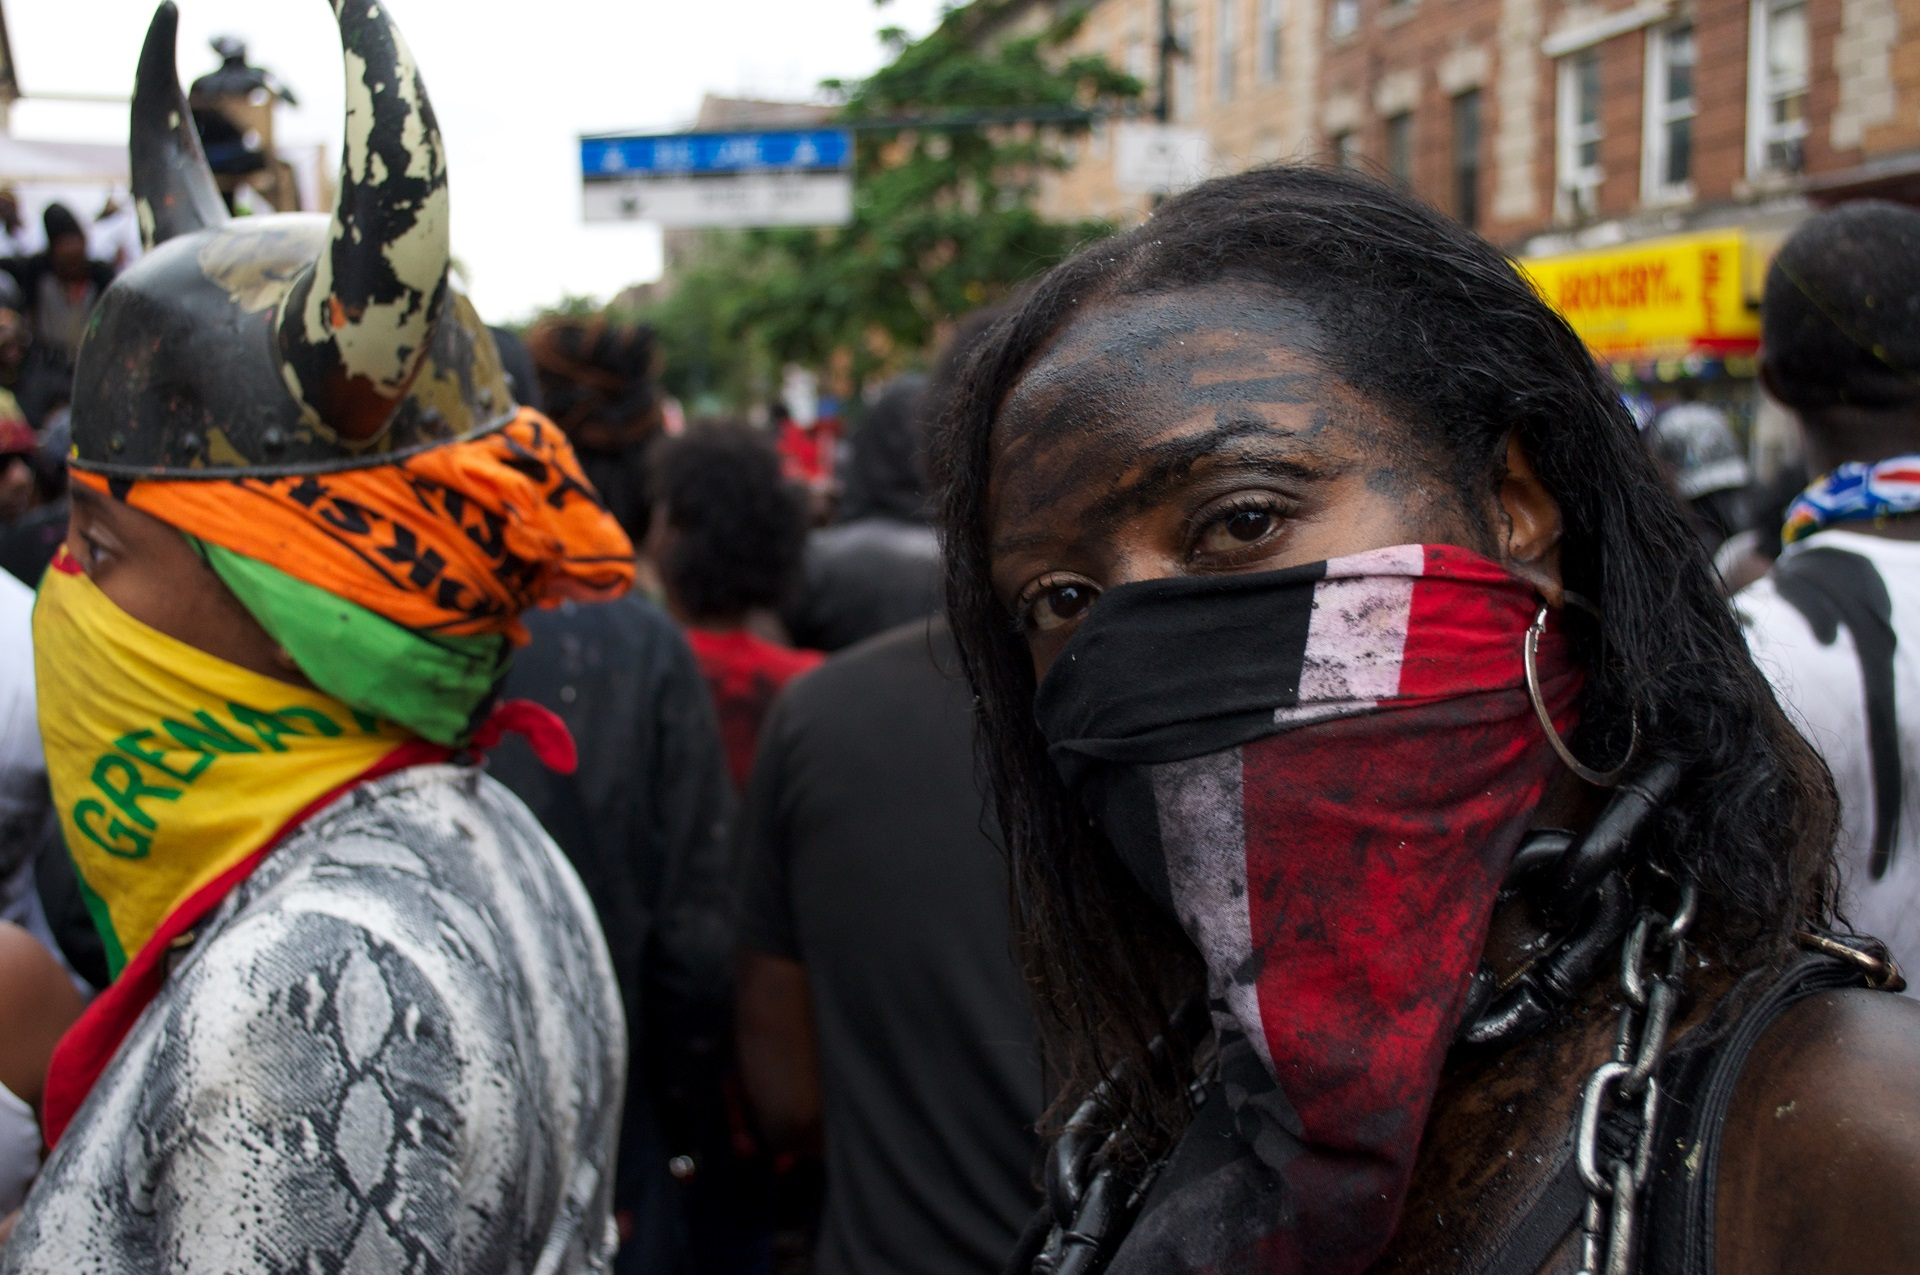 A marcher covered in motor oil wears the flag of Trinidad and Tobago around her face.